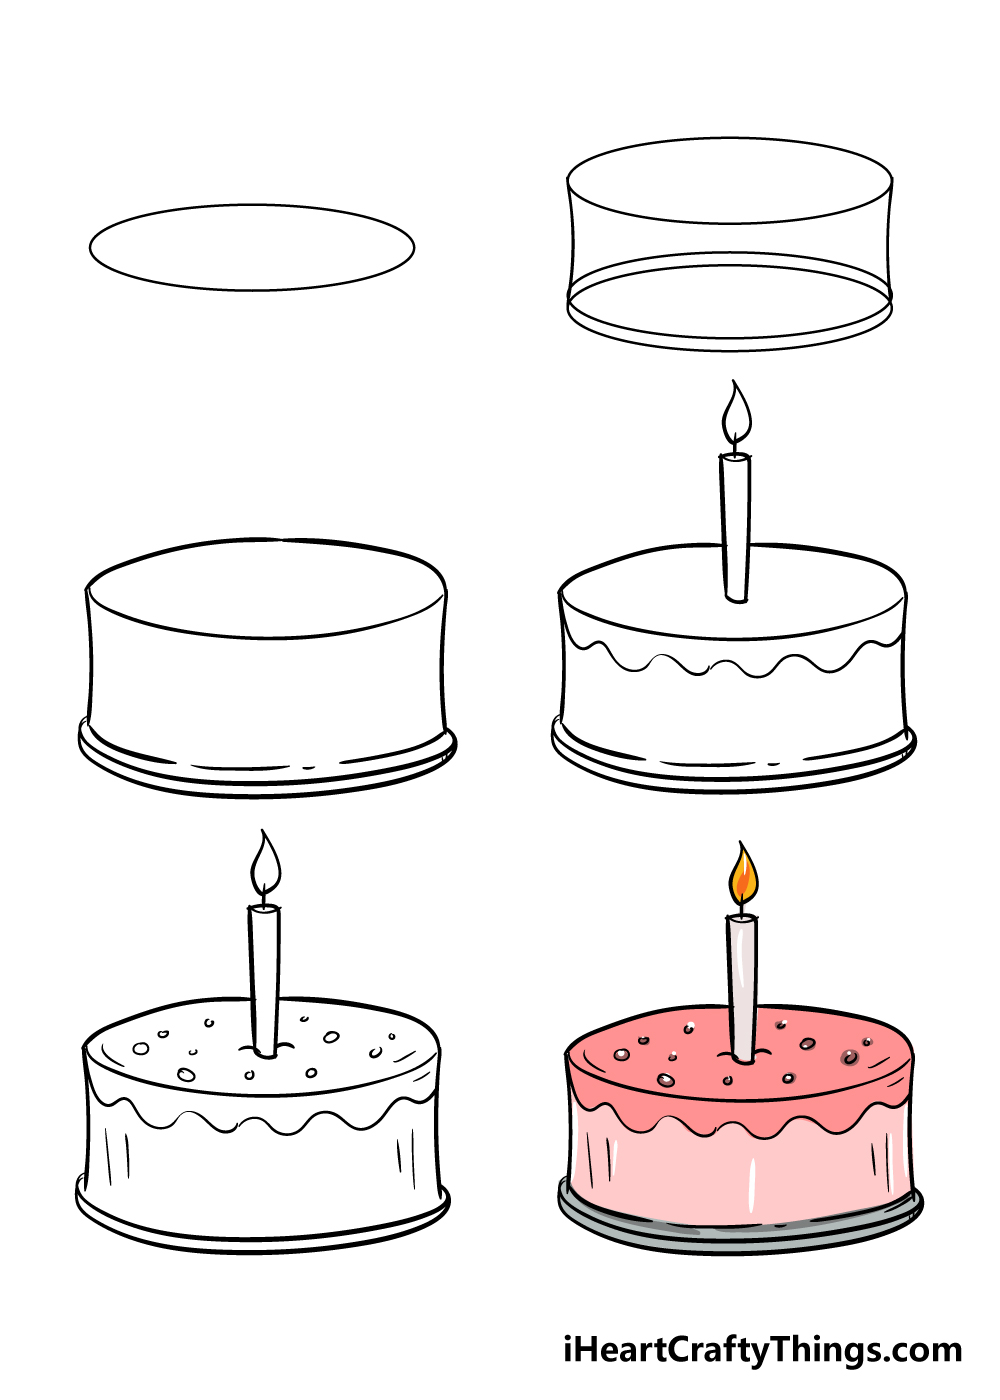 how to draw cake in 6 steps